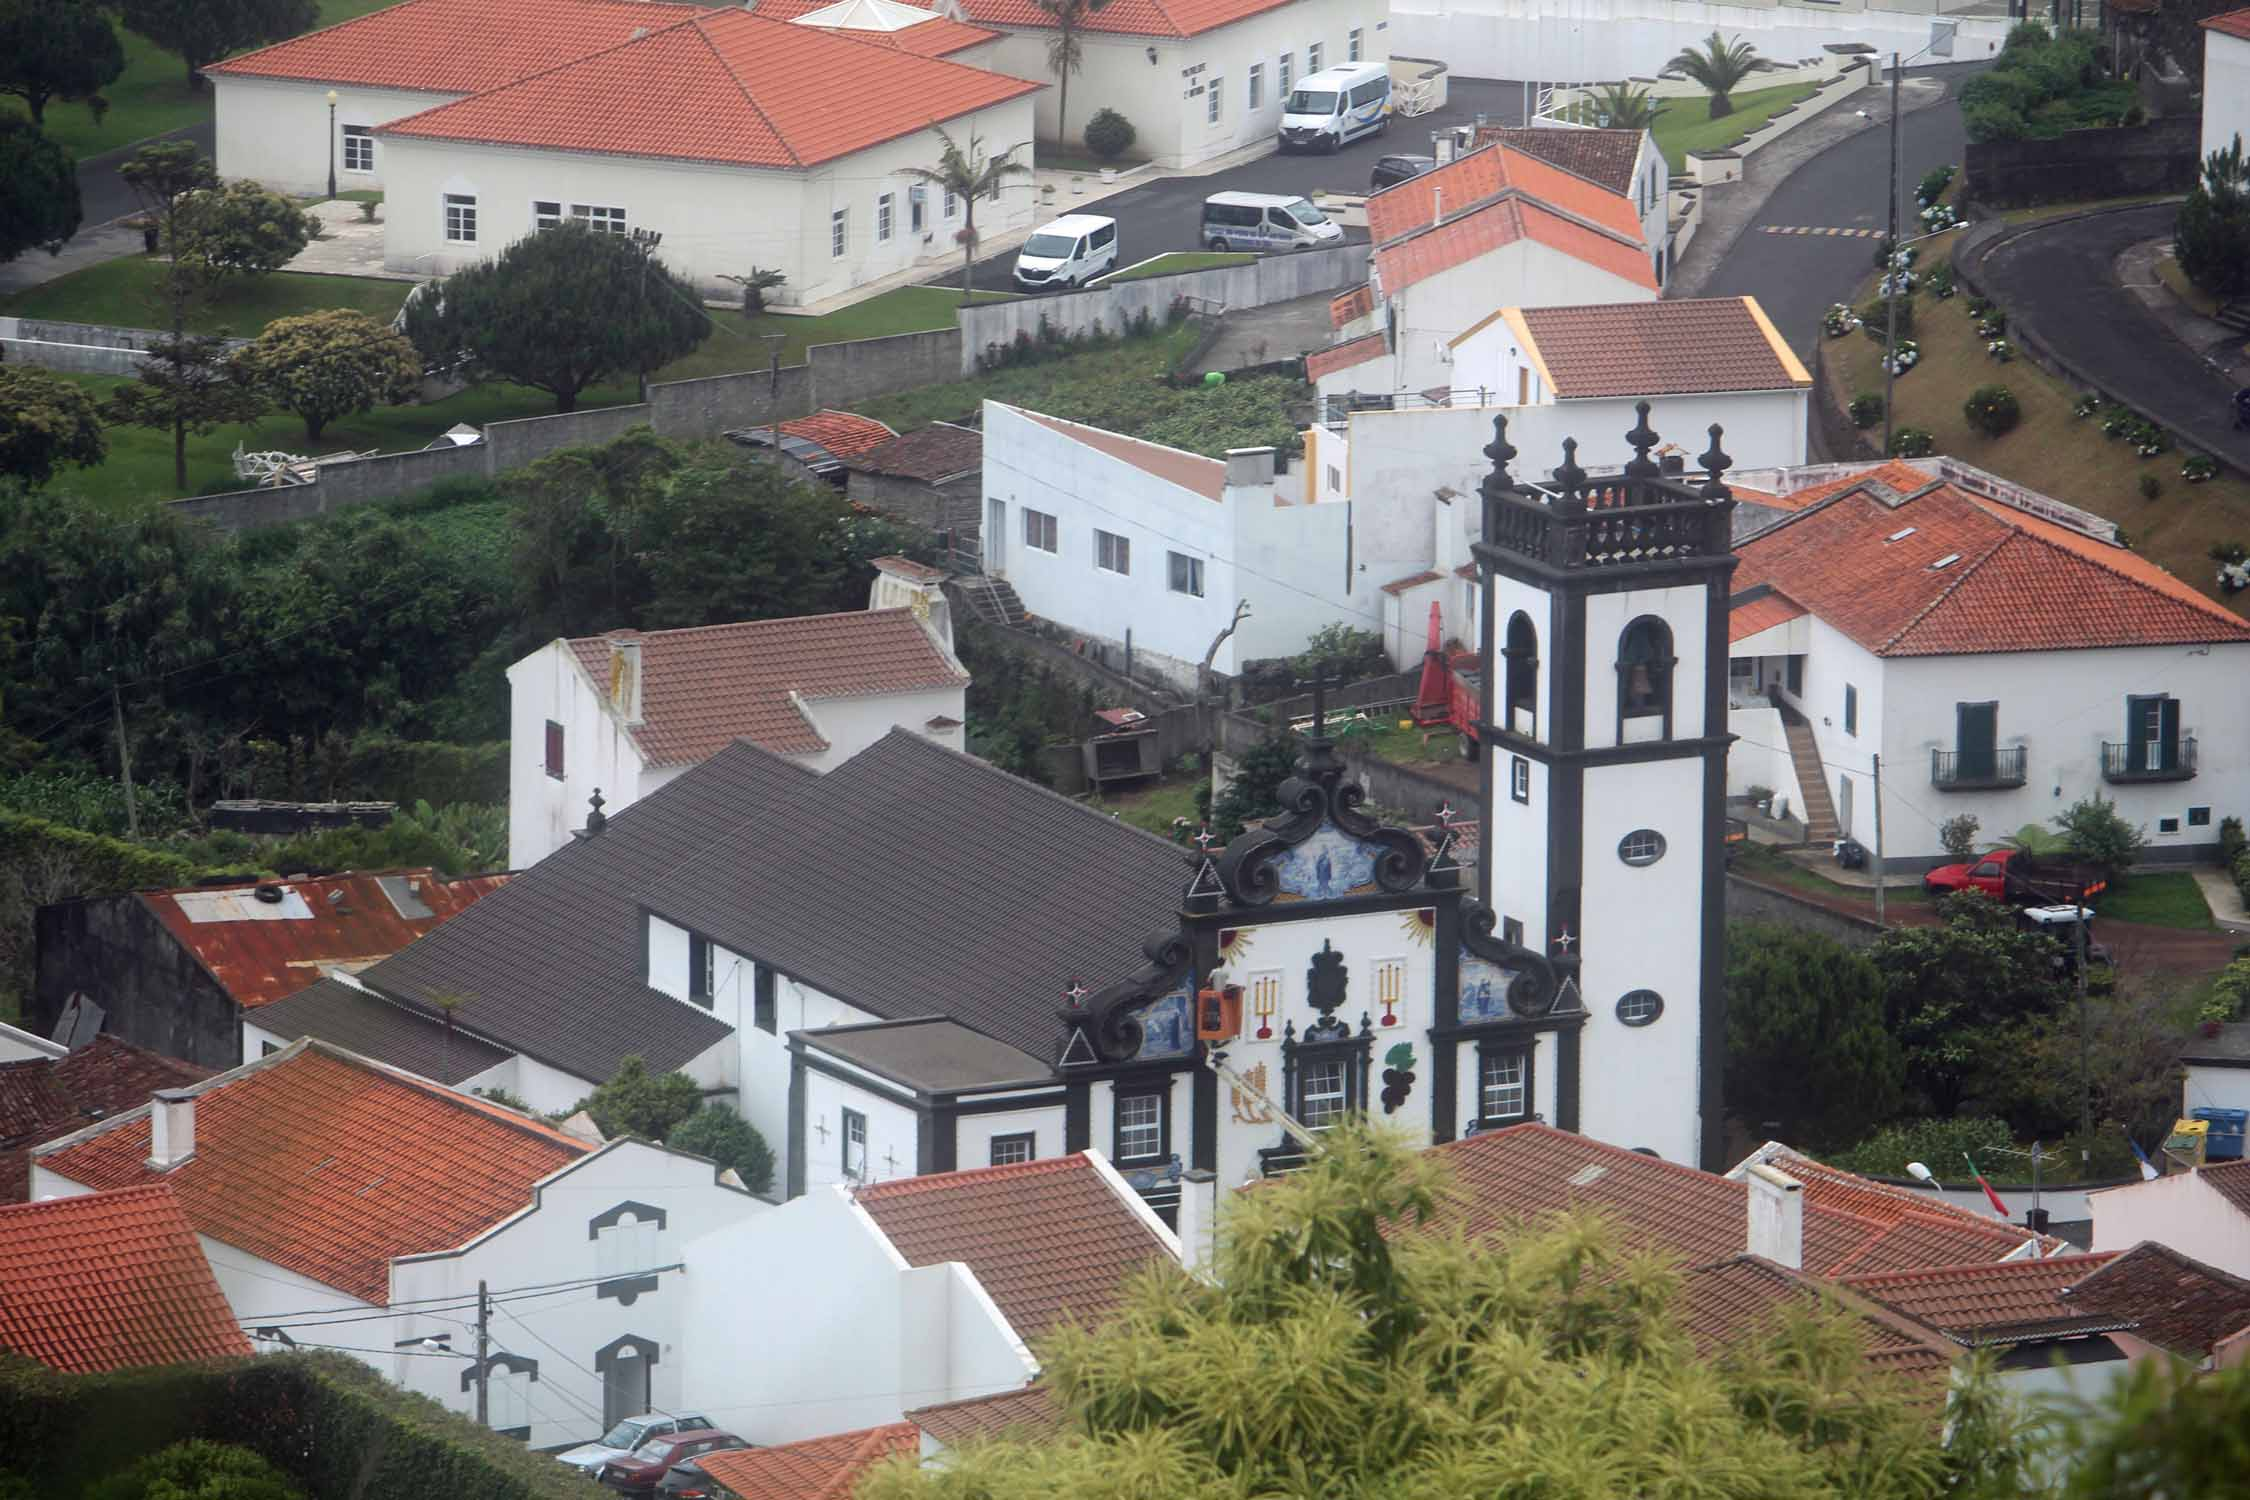 The church of Santo Antonio, São Miguel island, Azores